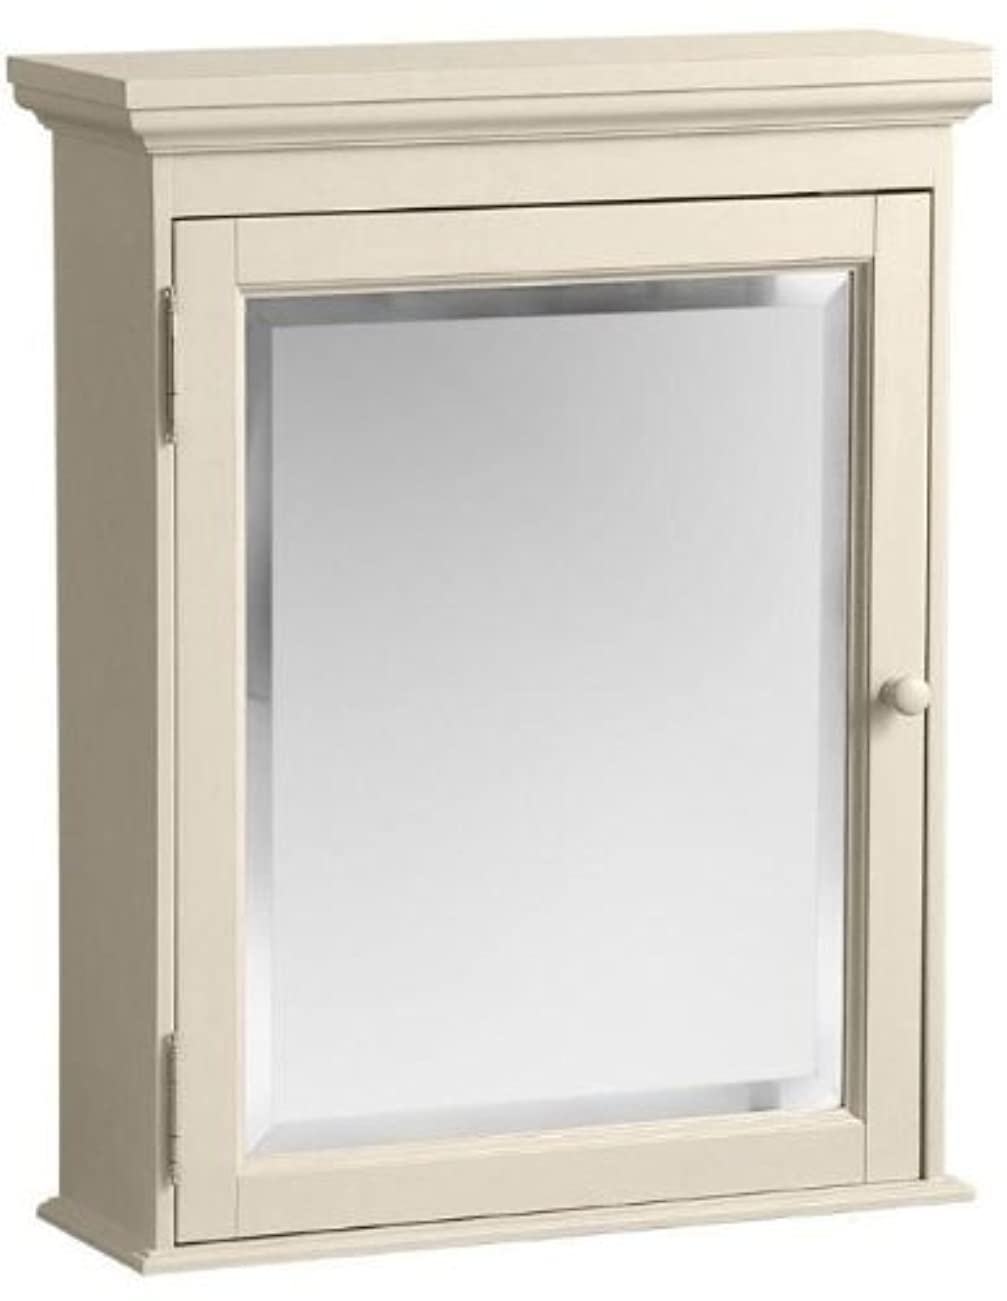 Foremost CTAC2429 Cottage 23-5/8 In. W X 29 In. H Surface-mount Medicine Cabinet In Antique White by Foremost